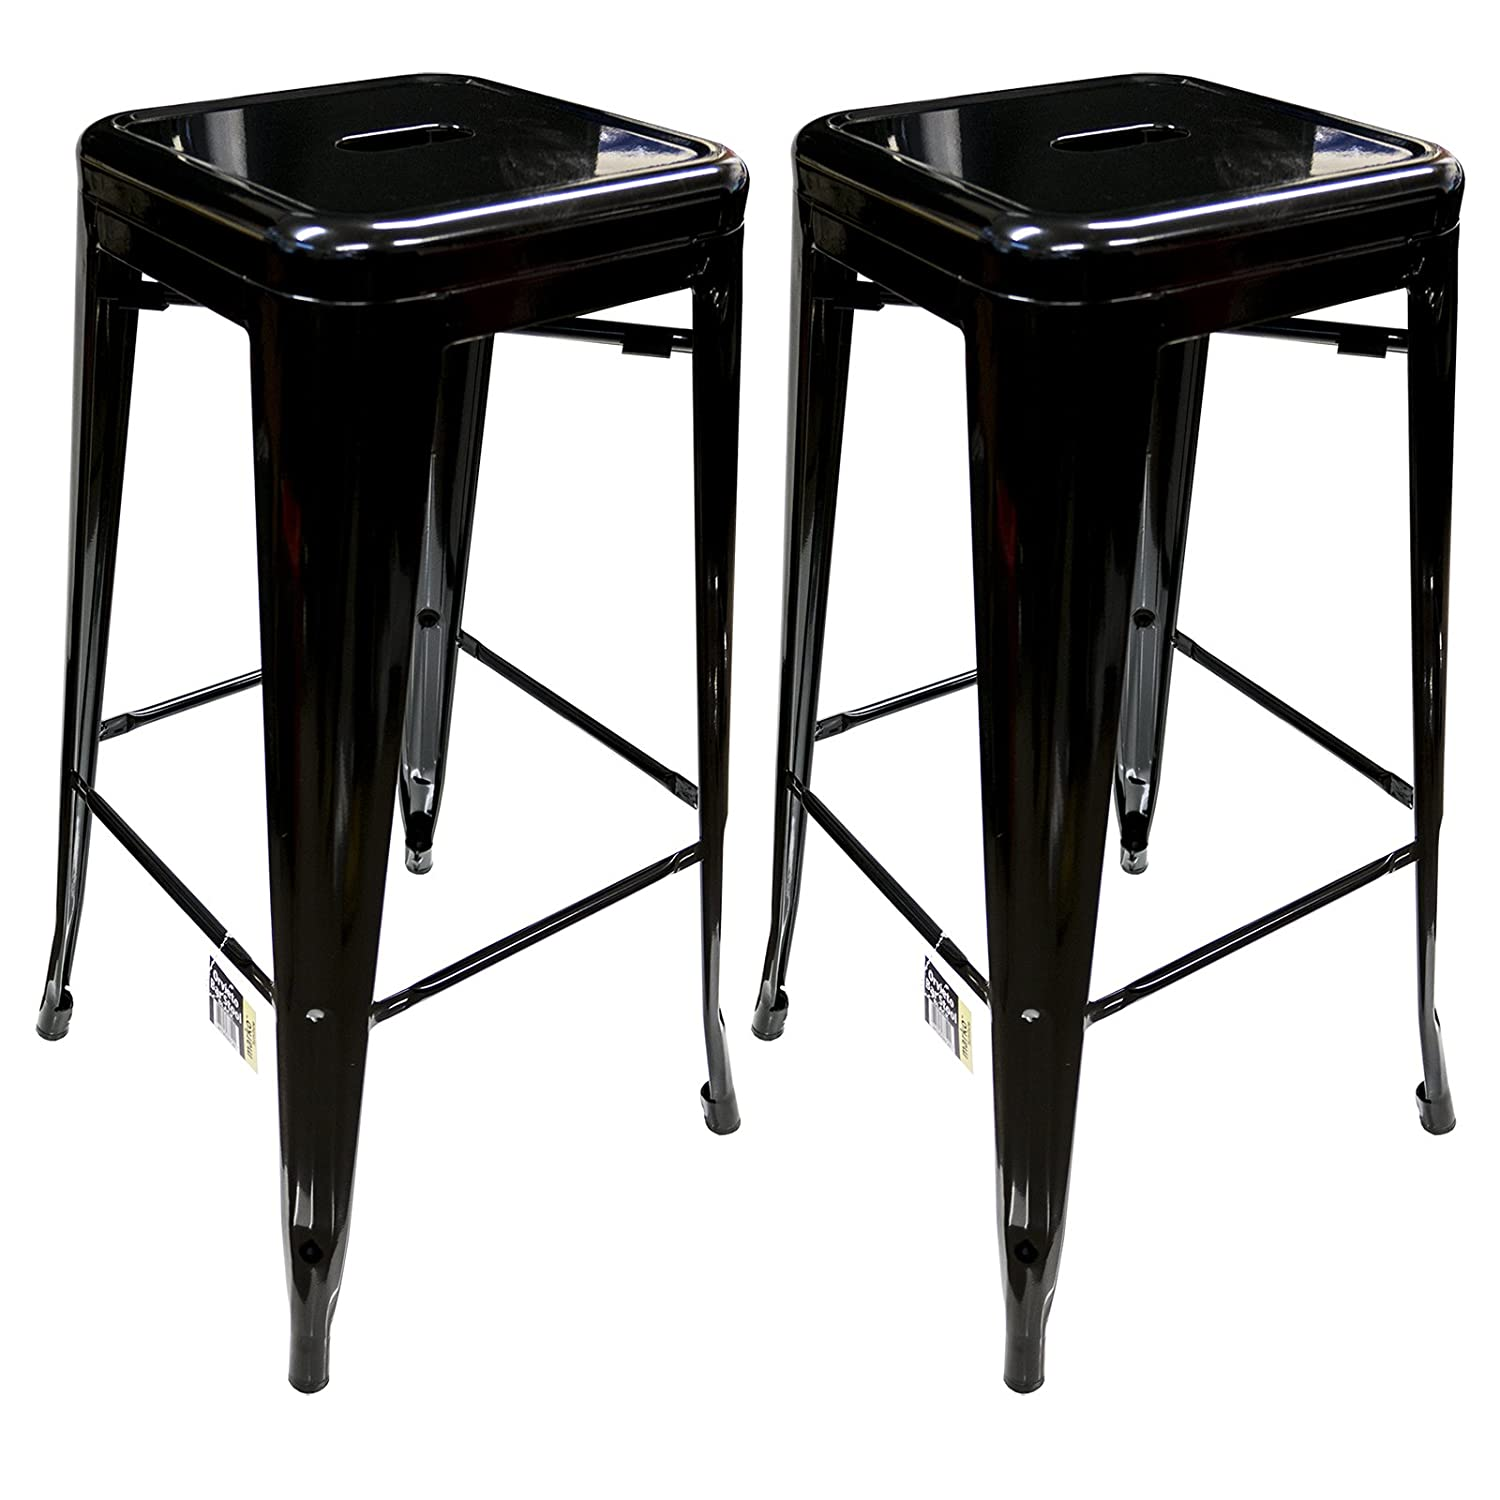 Metal breakfast bar stools customized industrial retro simple casual bar metal bar stool high Home bar furniture amazon